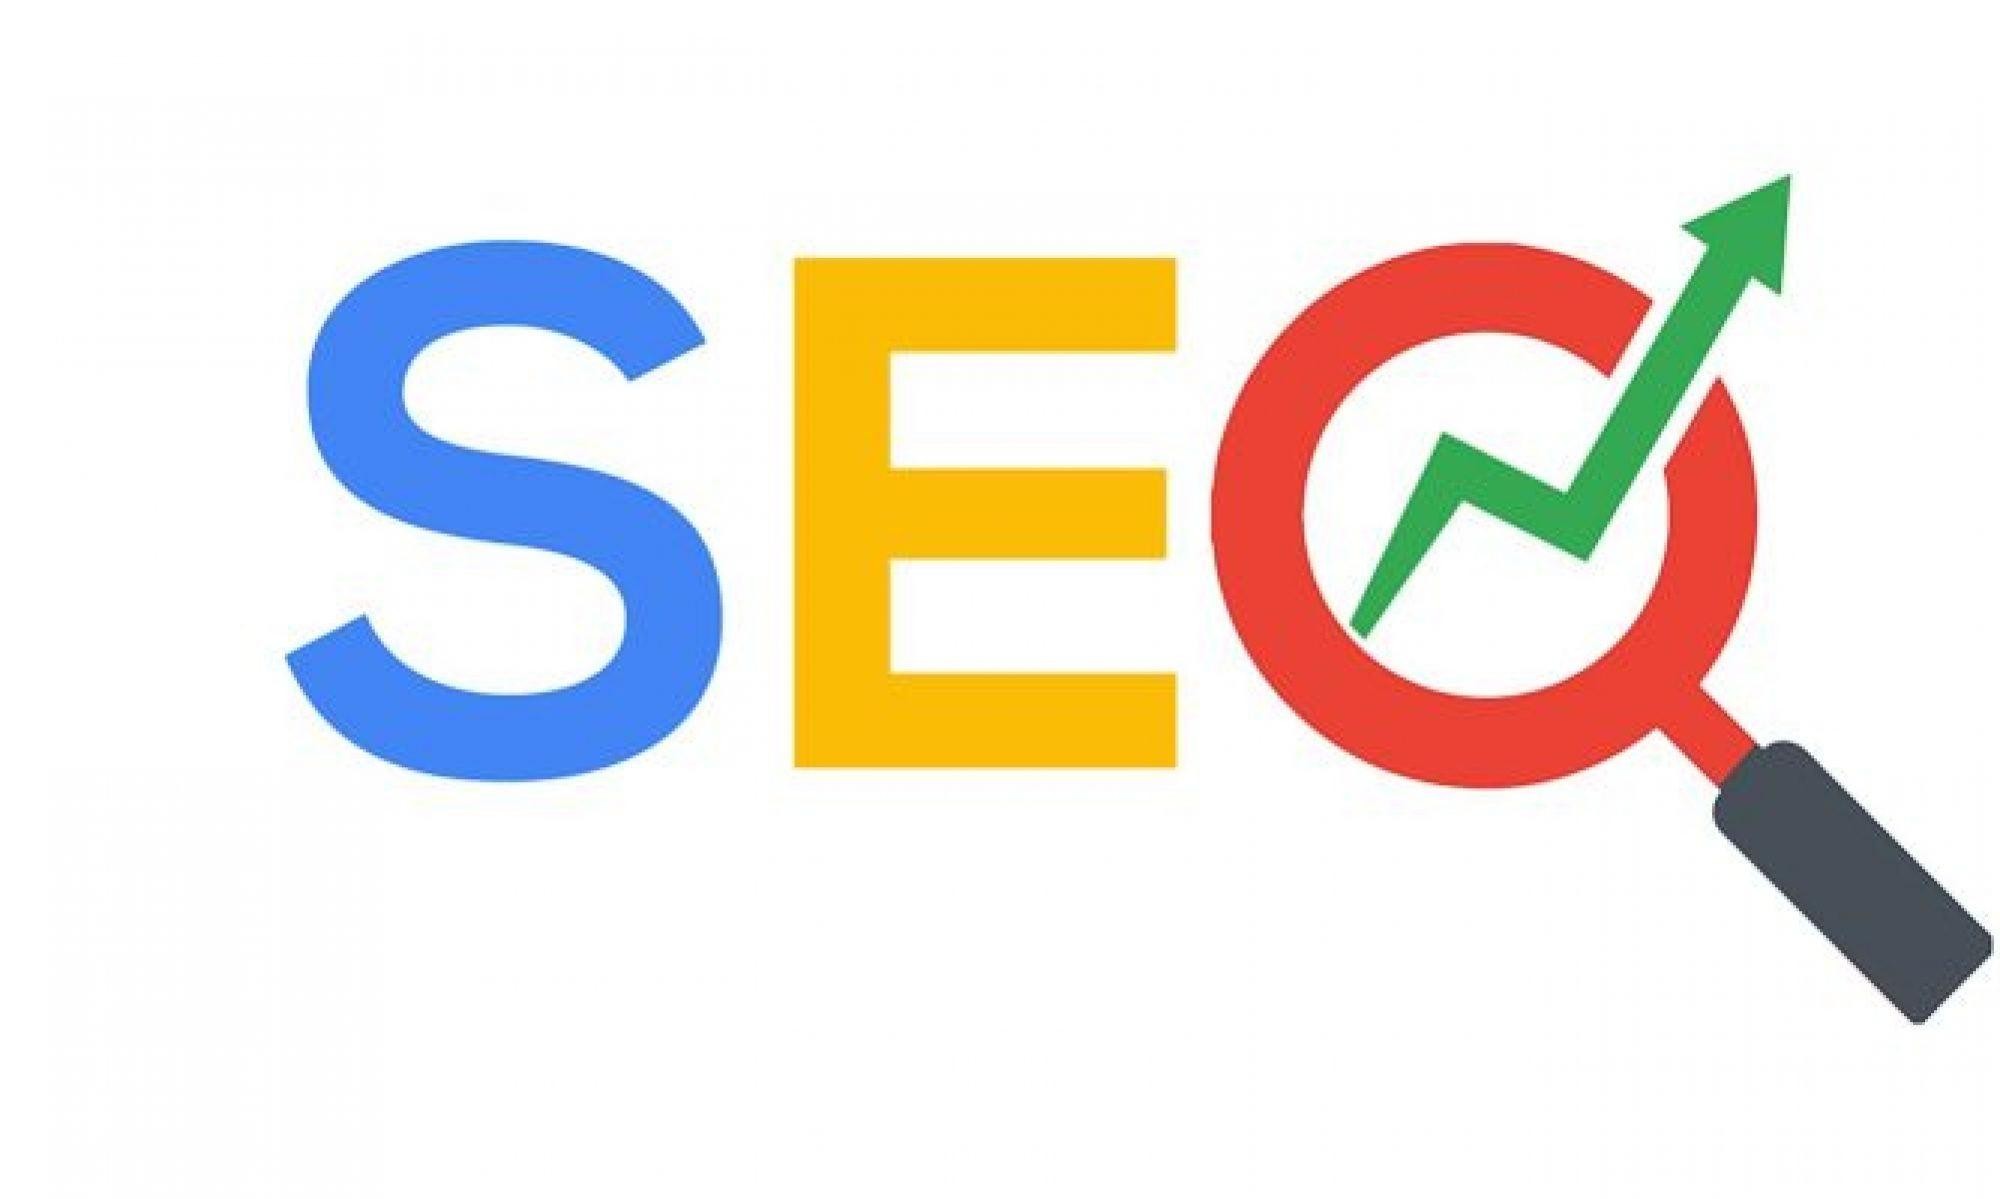 Does SEO (Search Engine Optimization) Still Work in 2020?